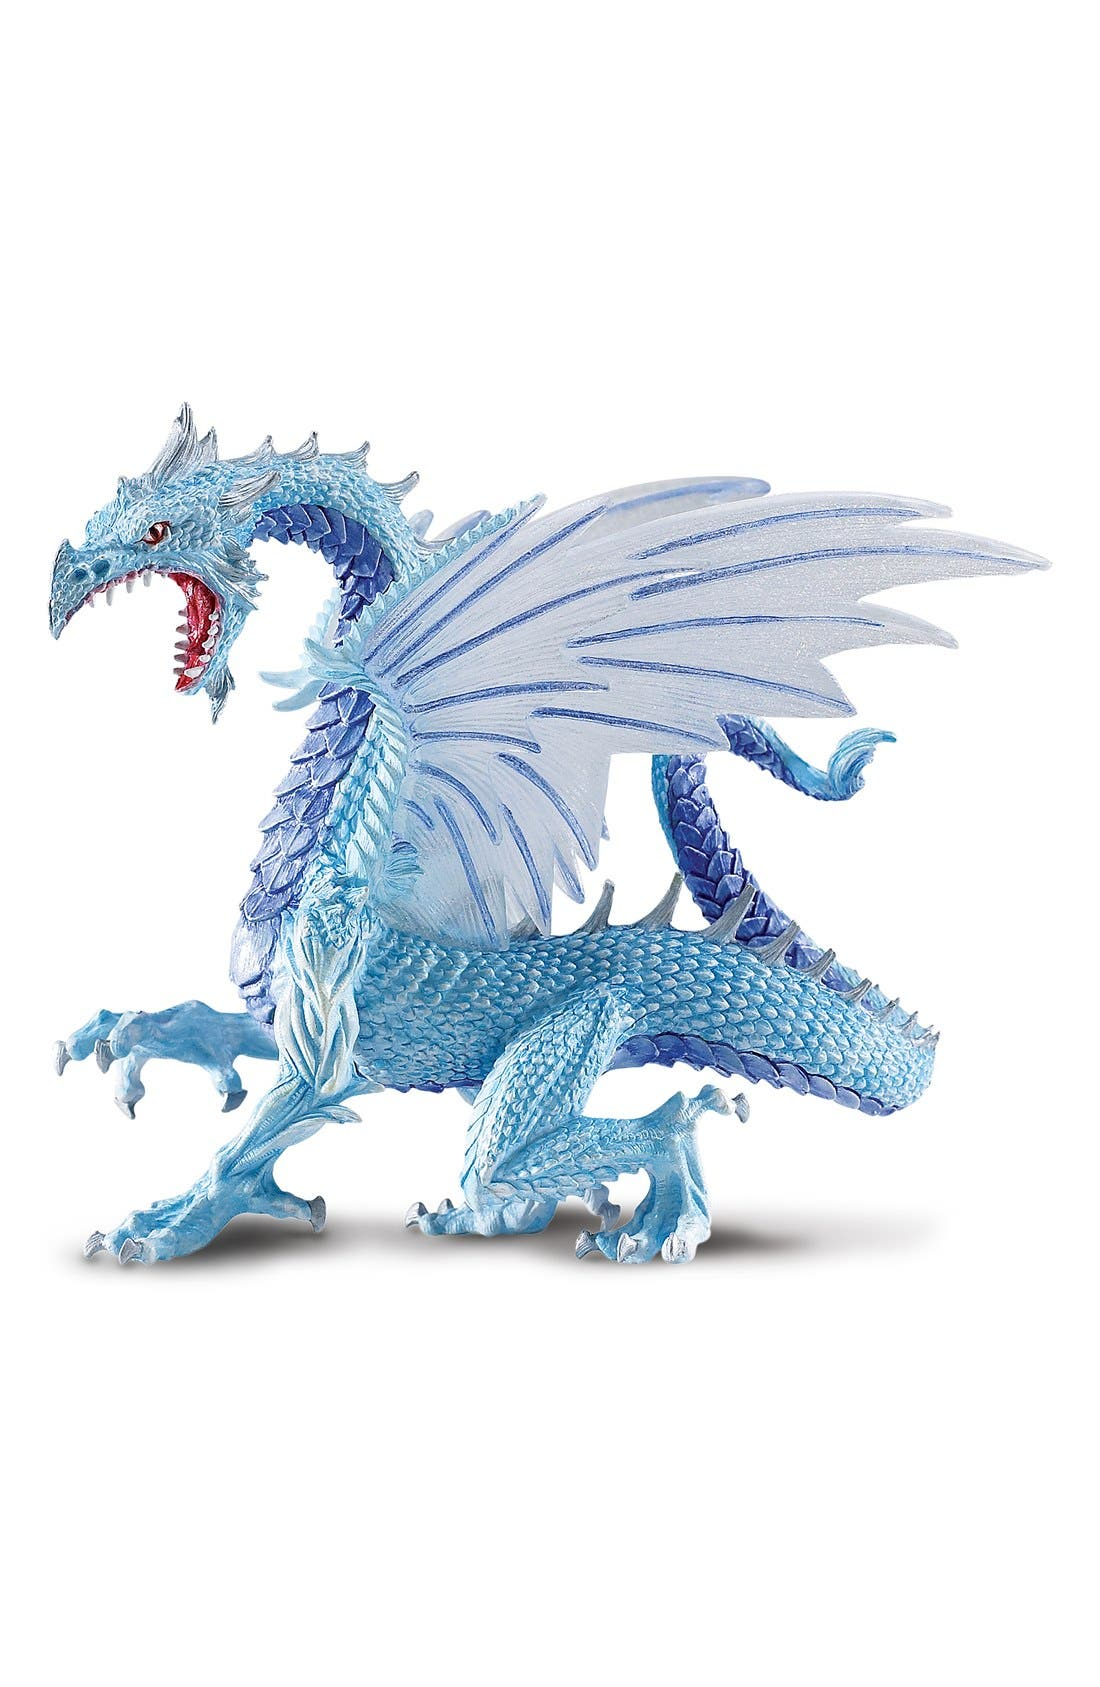 SAFARI LTD. Ice Dragon Figurine